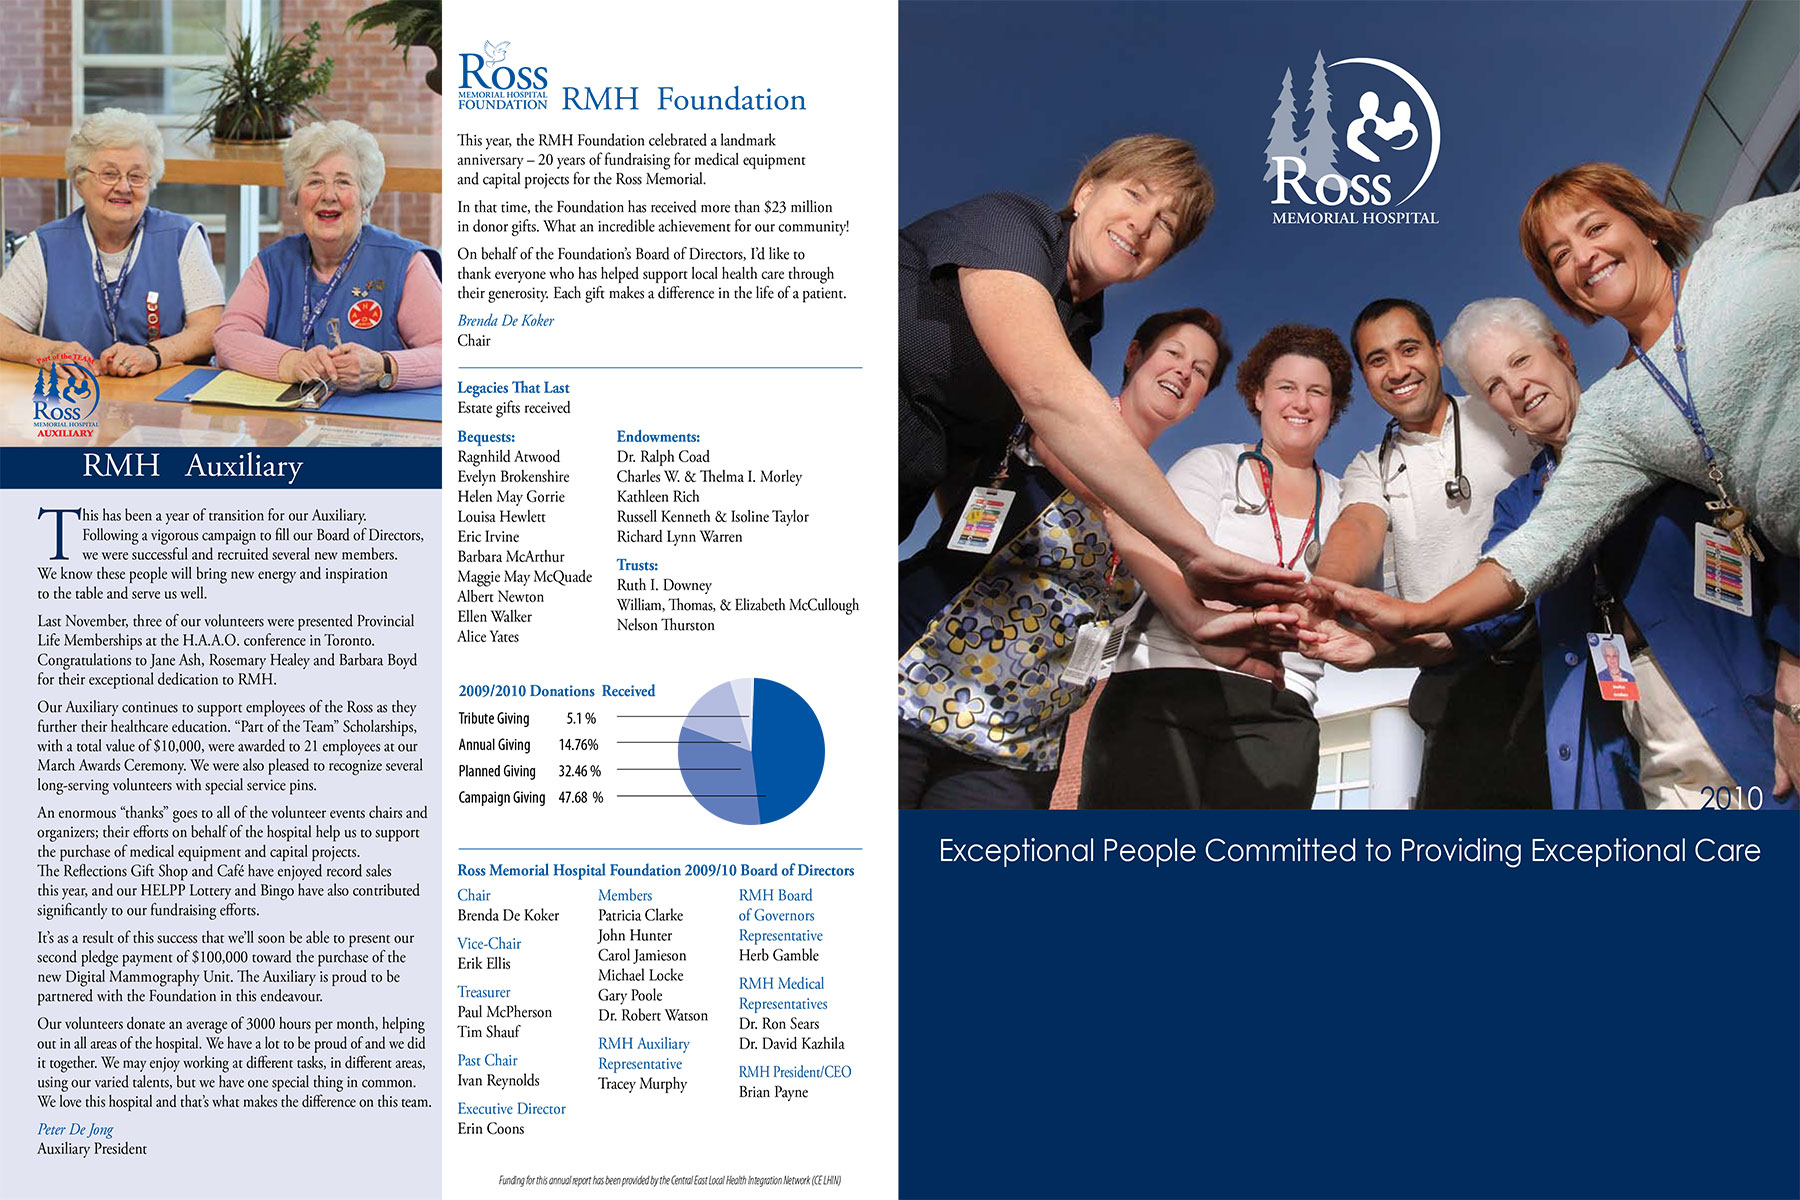 rmh_2010_annual_report_folder-1